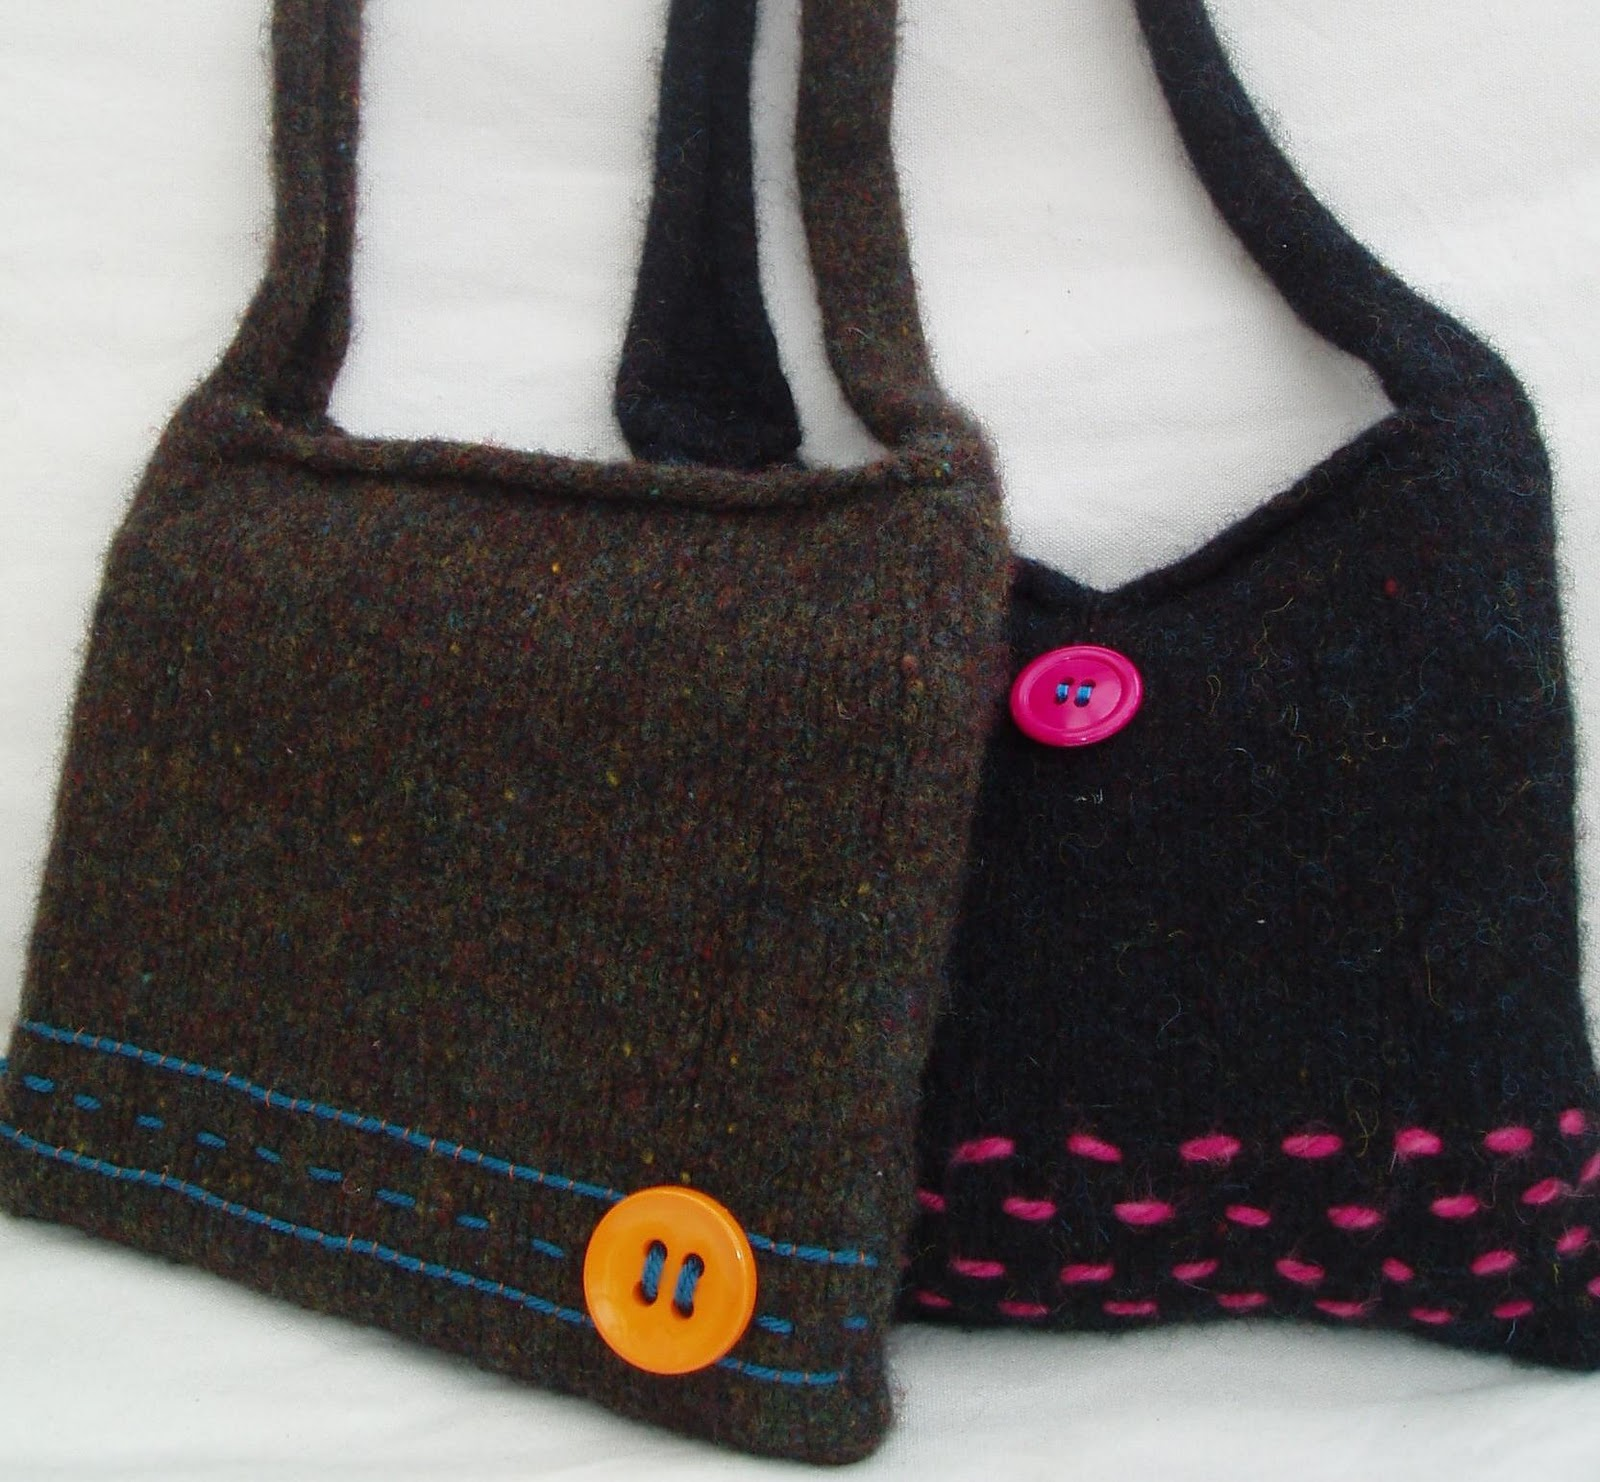 The Woolly Brew Felted Shoulder Bag